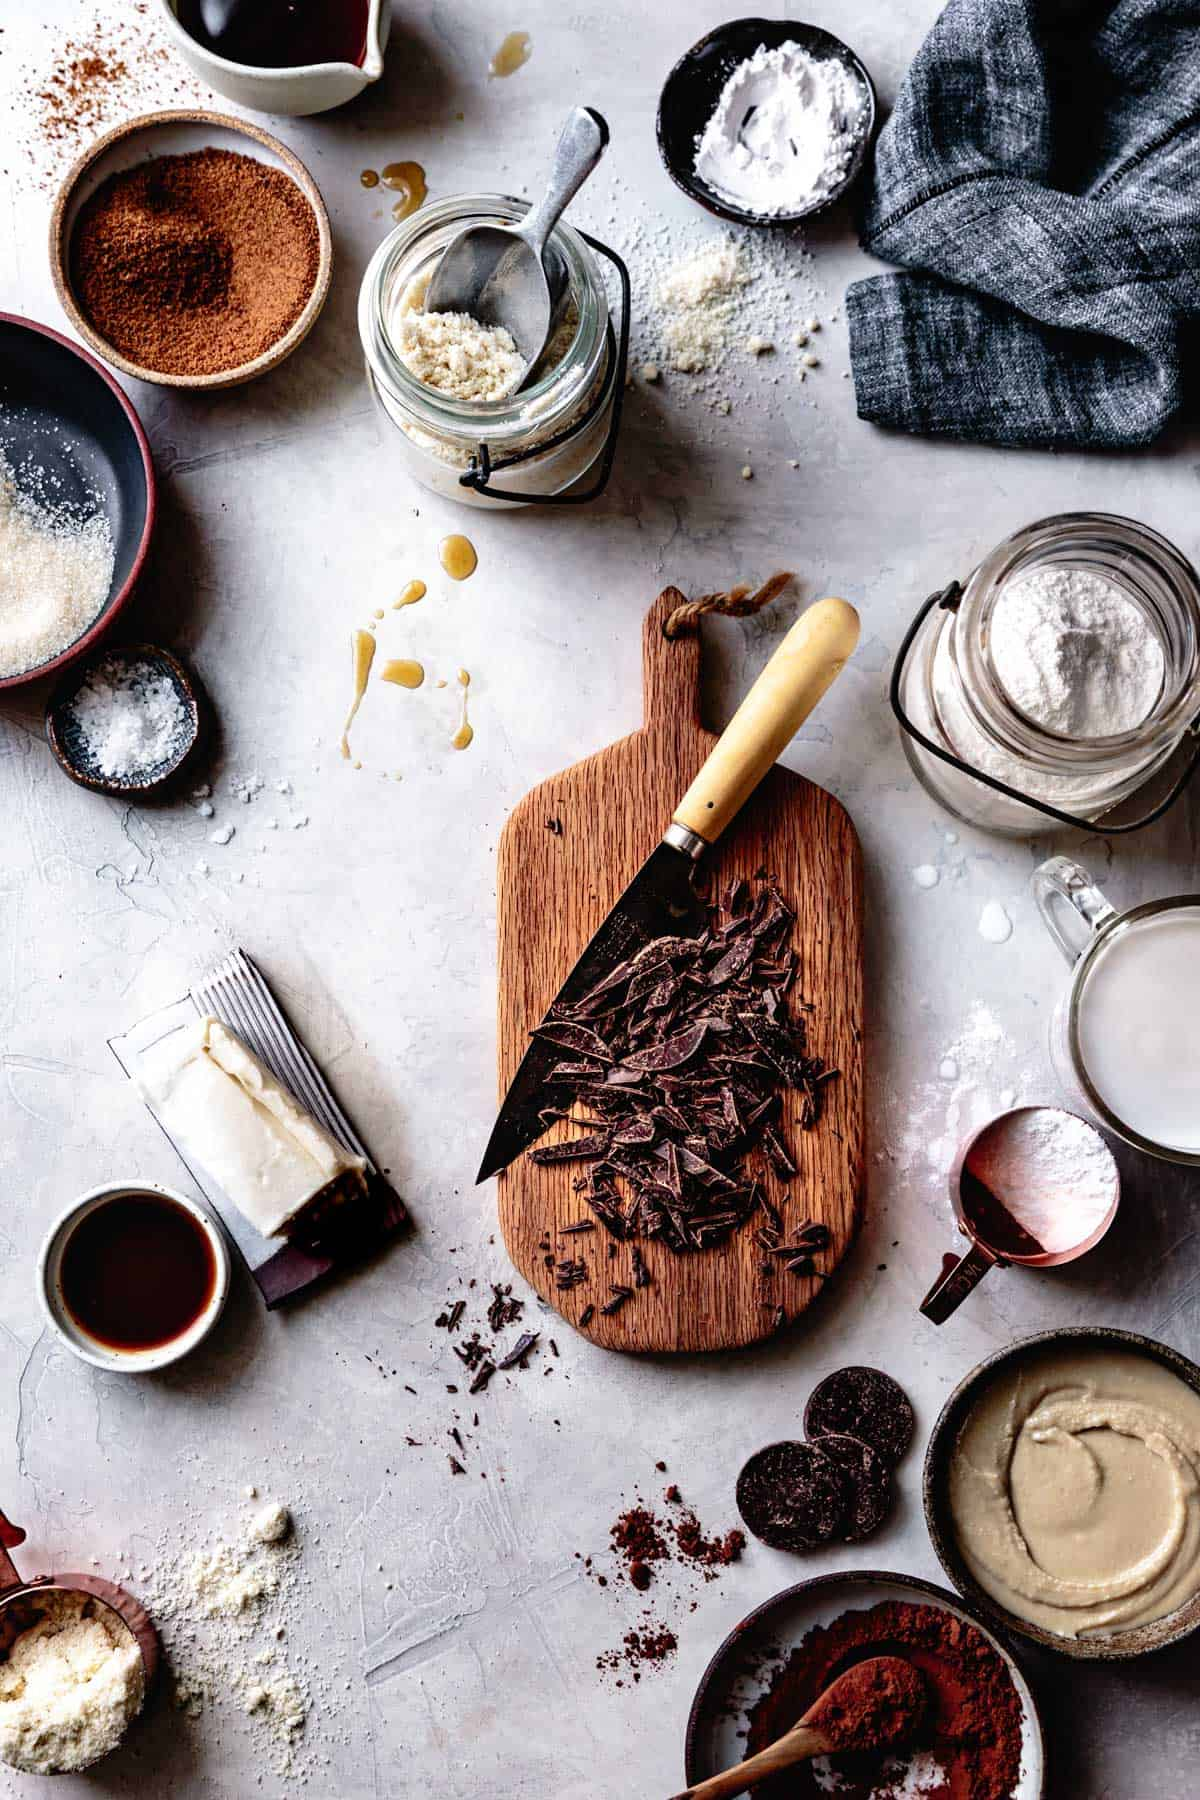 Gluten Free Vegan Chocolate Dessert Ingredients